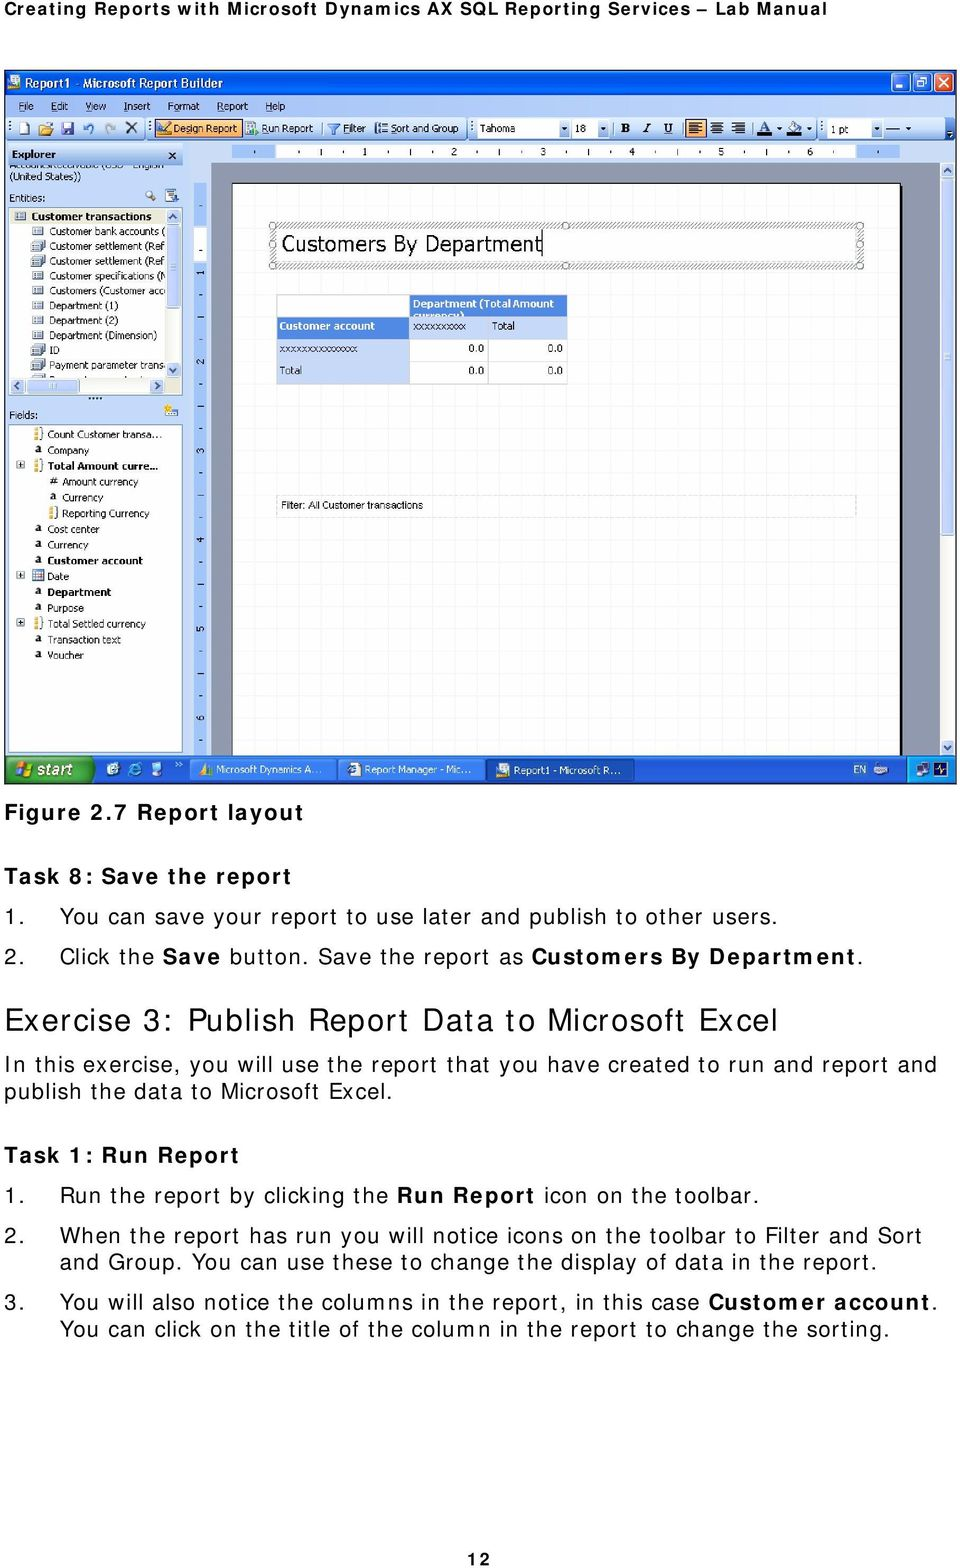 Creating Reports with Microsoft Dynamics AX SQL Reporting Services - PDF